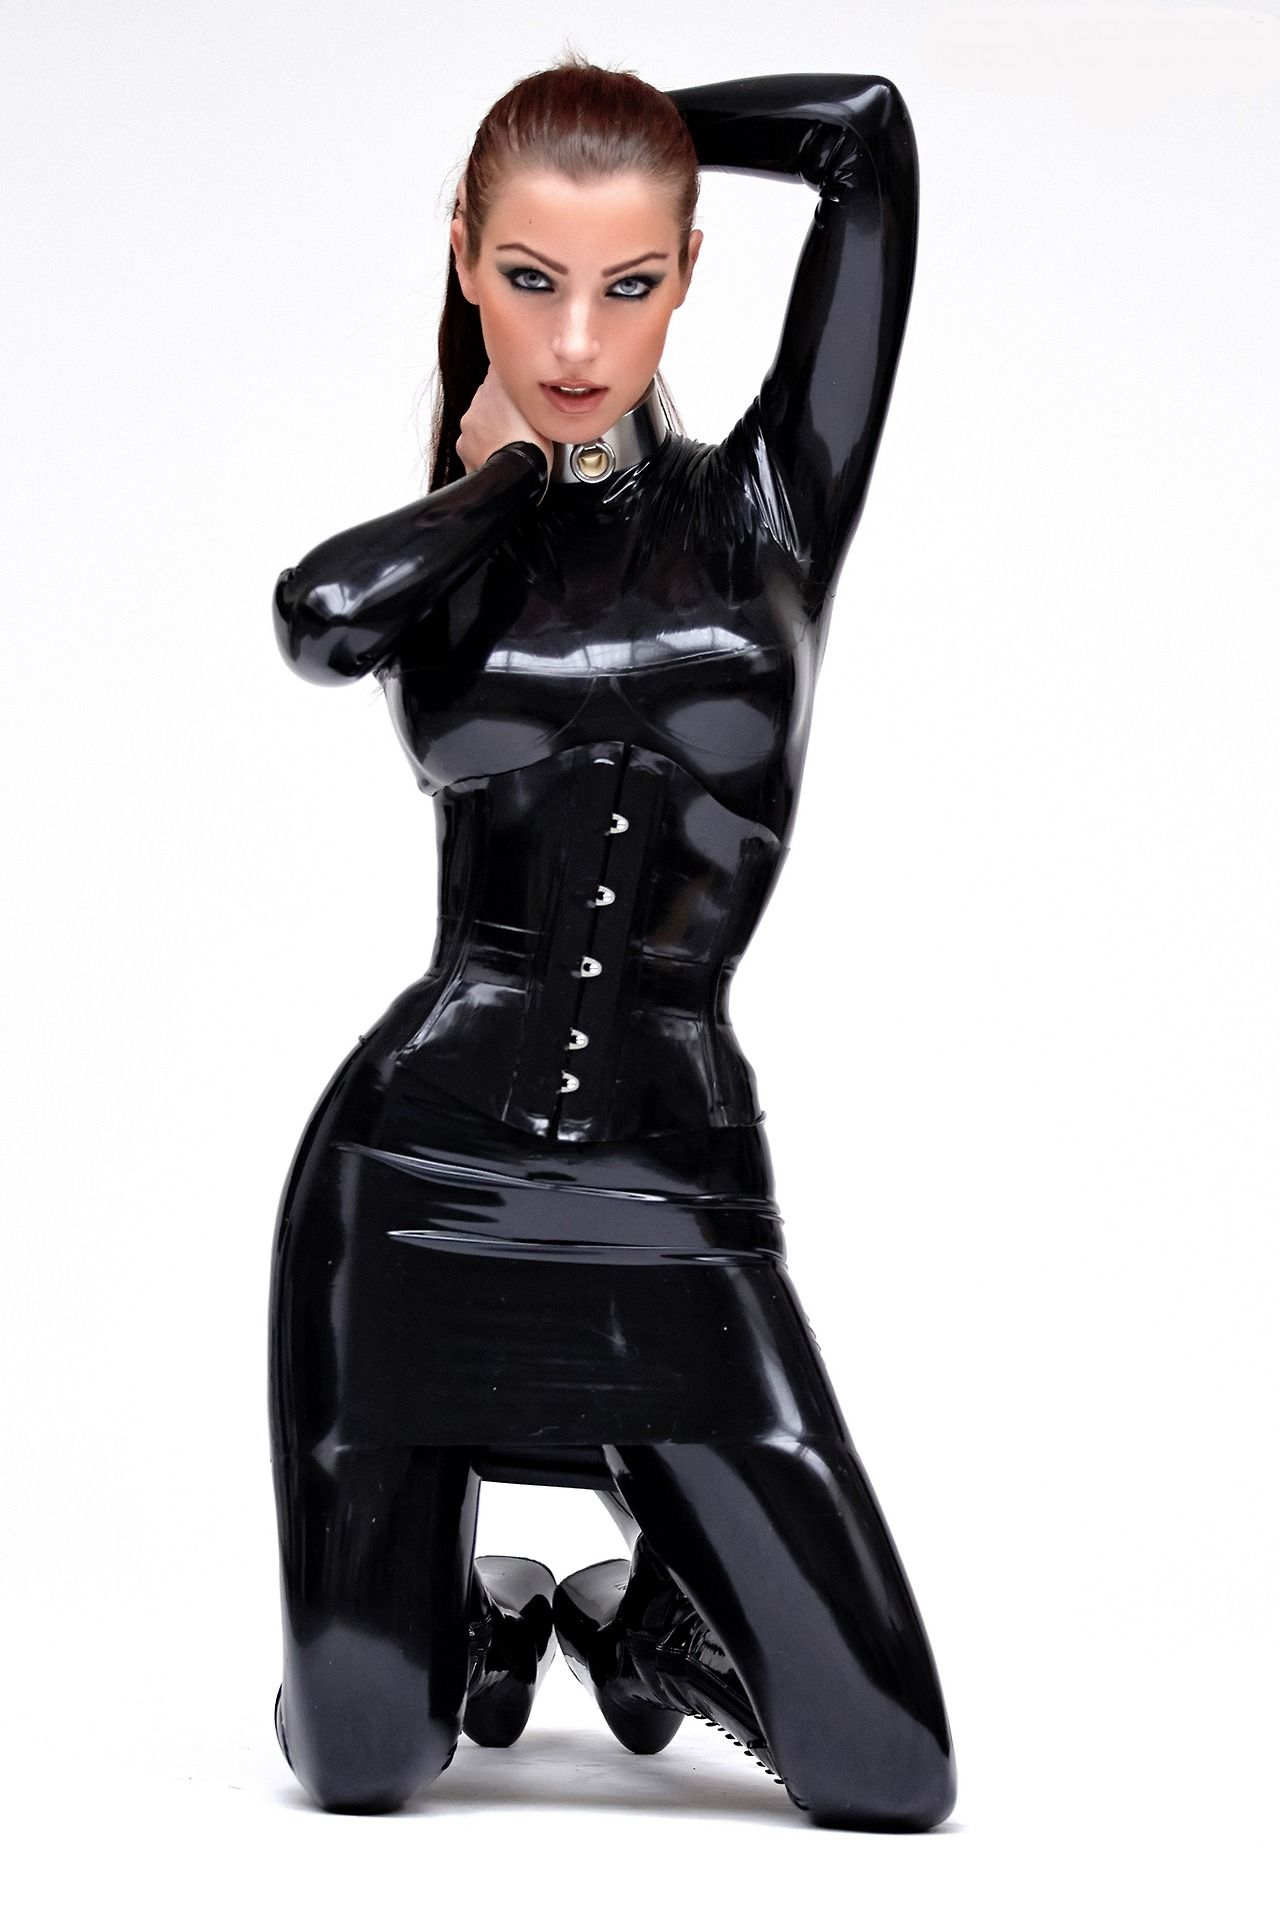 Latex and Leather is Very Sexy on the Right Woman – 27 Pics